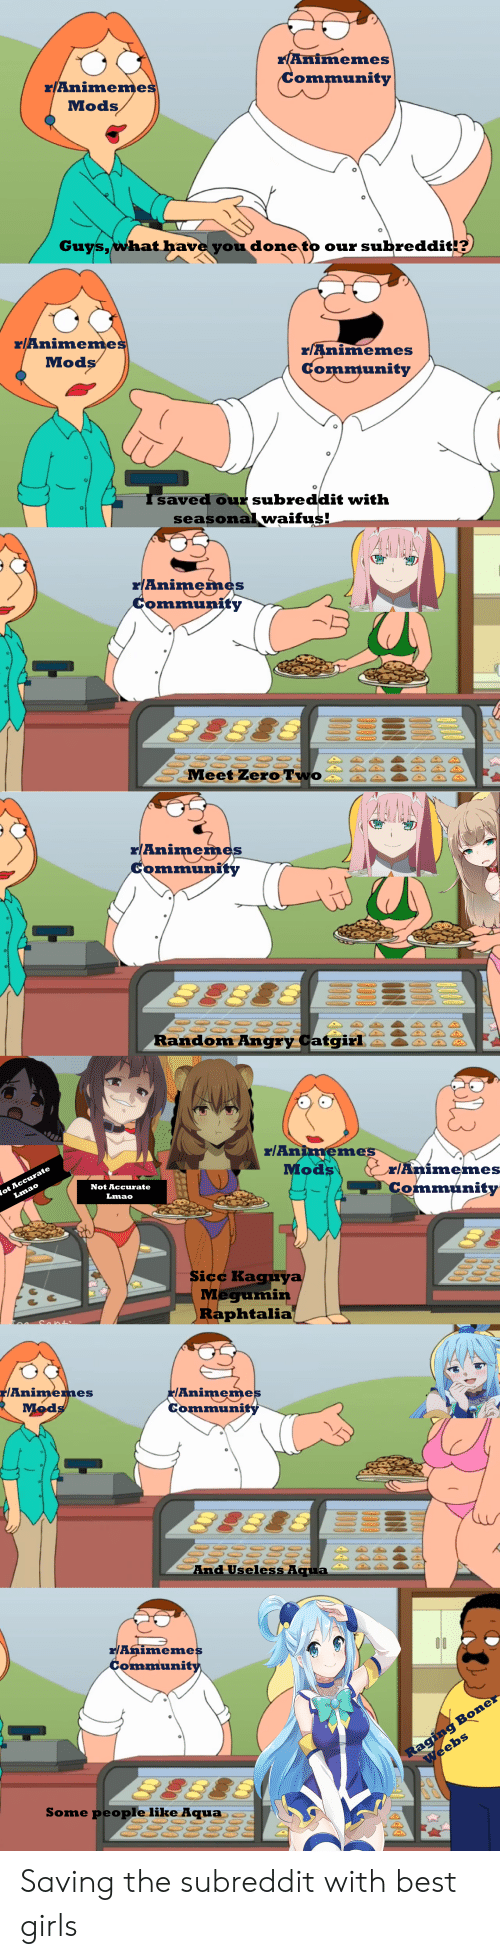 Best Anime Porn Subreddit nimemes ommunity ranimeme mods guyswhathave you done to our